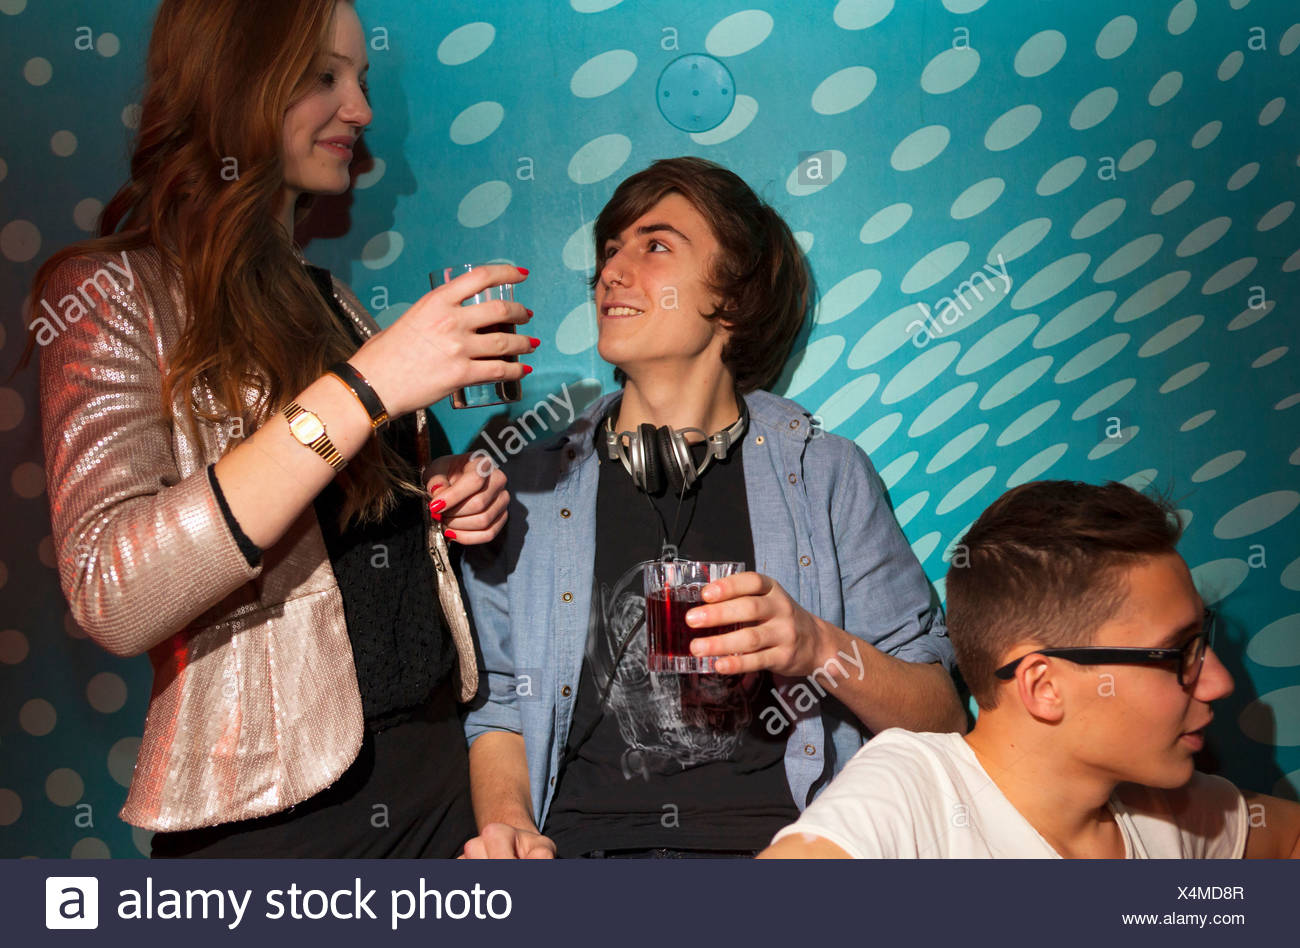 Teenagers holding drinking glasses - Stock Image